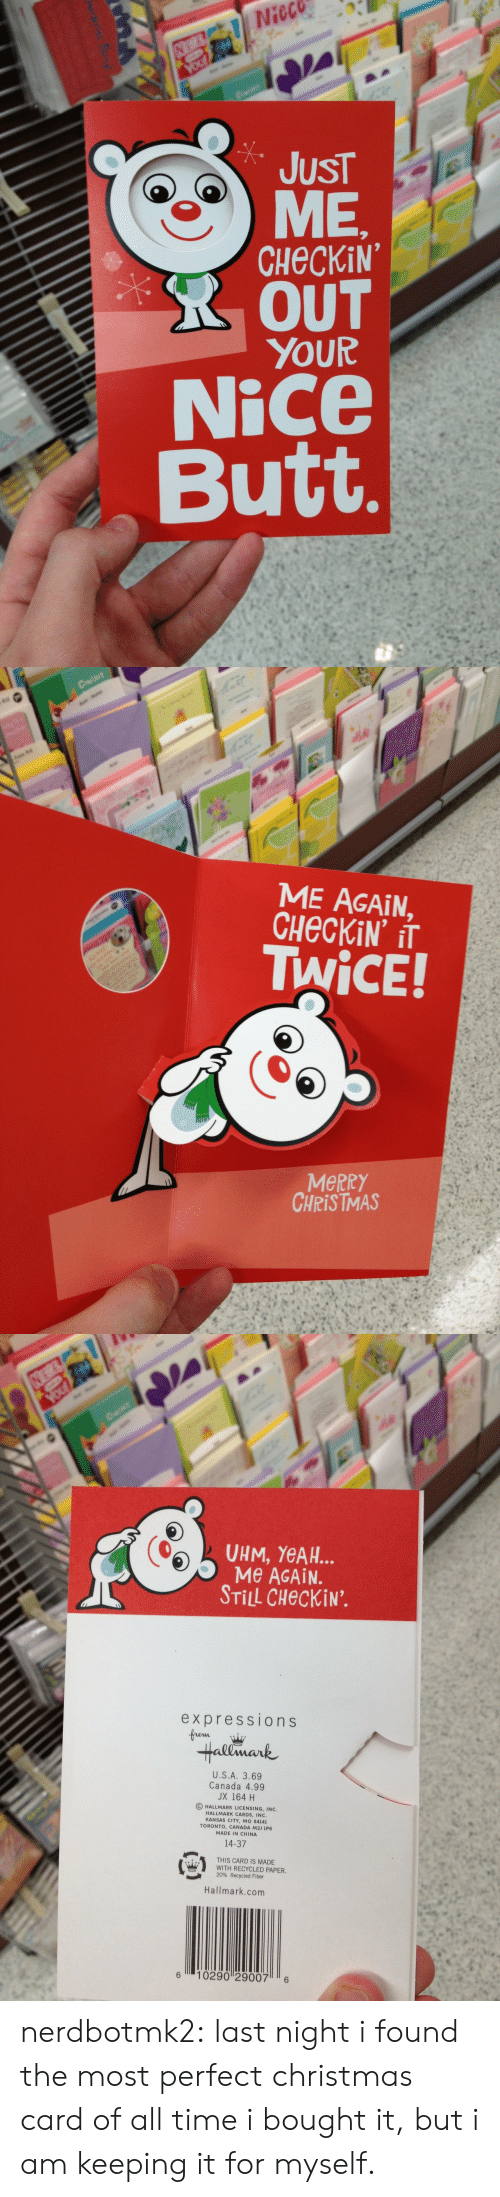 Hallmark: Nieco  JUST  CHECKiN  R OUT  YOUR  Nice  Butt   ME AGAIN,  TWiCE!  MeRRY  CHRISTMAS   UHM, YeAH..  Me AGAiN.  STİLL CHeckiN.  expressions  Hallmark  U.S.A. 3.69  Canada 4.99  JX 164 H  O HALLMARK LICENSING, INC.  HALLMARK CARDS, INC  KANSAS CITY, MO 64141  TORONTO, CANADA M2J 1P6  MADE IN CHINA  14-37  姭  THIS CARD IS MADE  WITH RECYCLED PAPER.  20% Recycled Fiber  es  Hallmark.com  6 10290 29007 6 nerdbotmk2:  last night i found the most perfect christmas card of all time i bought it, but i am keeping it for myself.